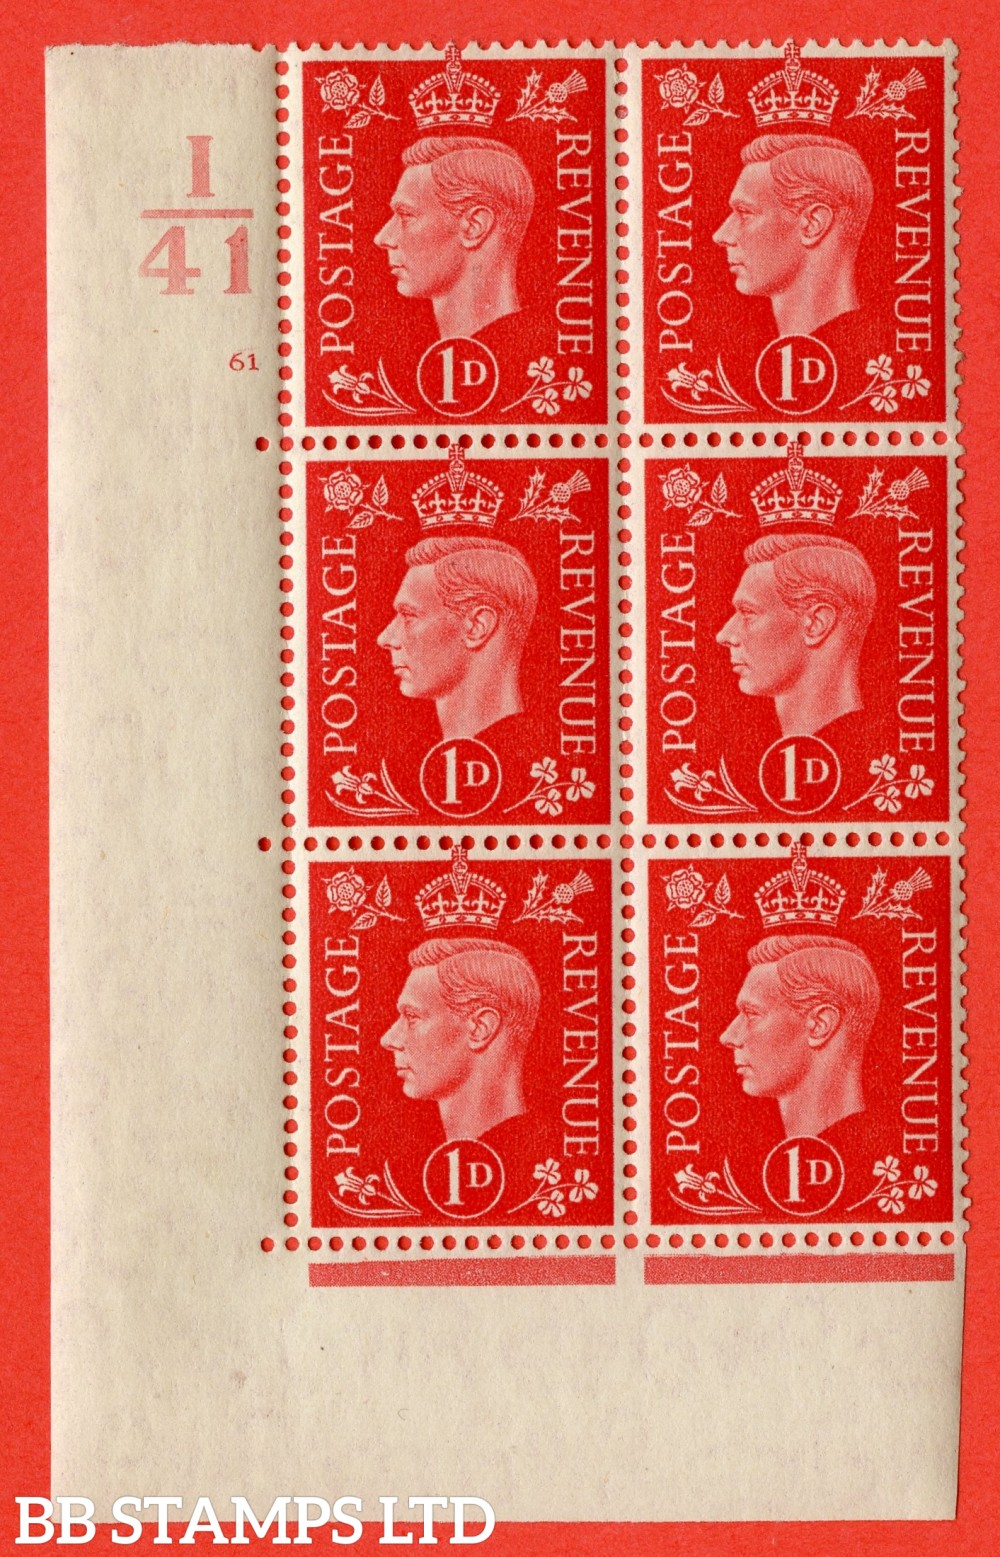 "SG. 463. Q4. 1d Scarlet. A very fine lightly mounted mint "" Control I41 cylinder 61 no dot "" block of 6 with perf type 5 E/I with marginal rule."